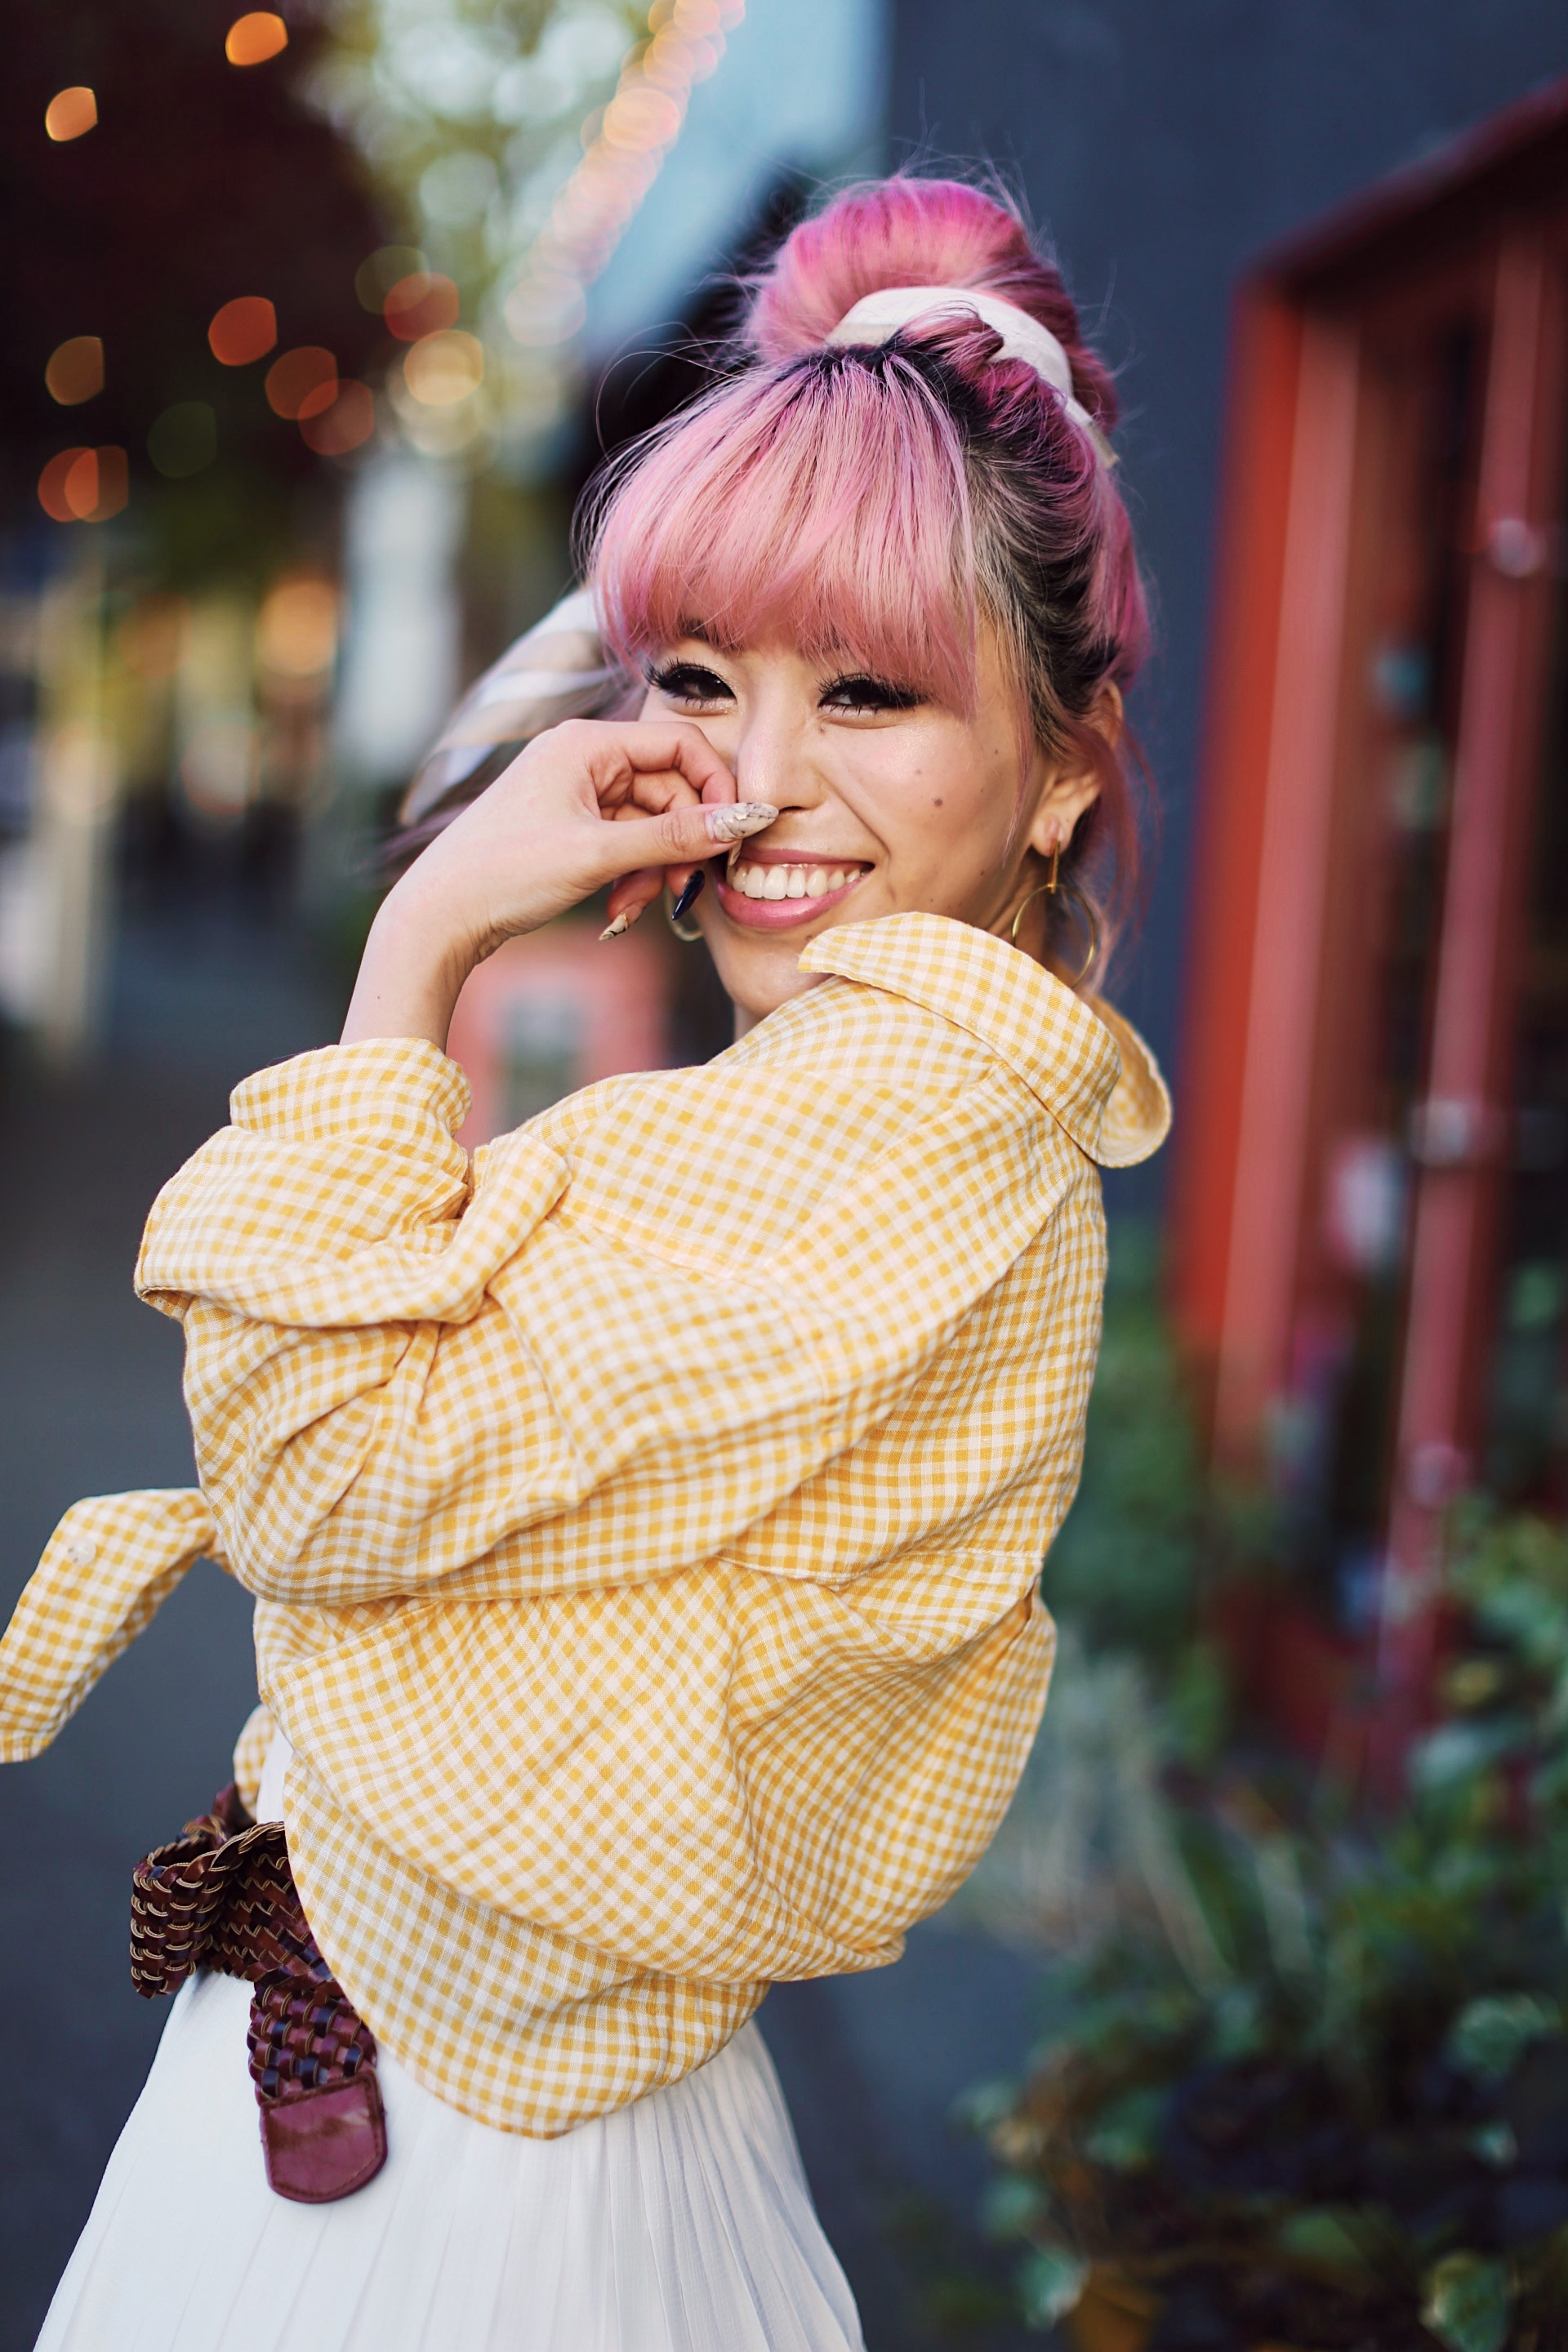 Uniqlo yellow Linen gingham shirt-Uniqlo White pleated chiffon midi skirt-Uniqlo Airism brat-pink tinted sunglasses ZERO UV-She in Pom pom Straw bucket bag-Vintage scarf bun hair style-Steve Madden Belt-Jane and the shoe denim oxford platforms-Aika's Love Closet-seattle fashion style blogger-Japanese-pink hair-smiling-spring fashion 10